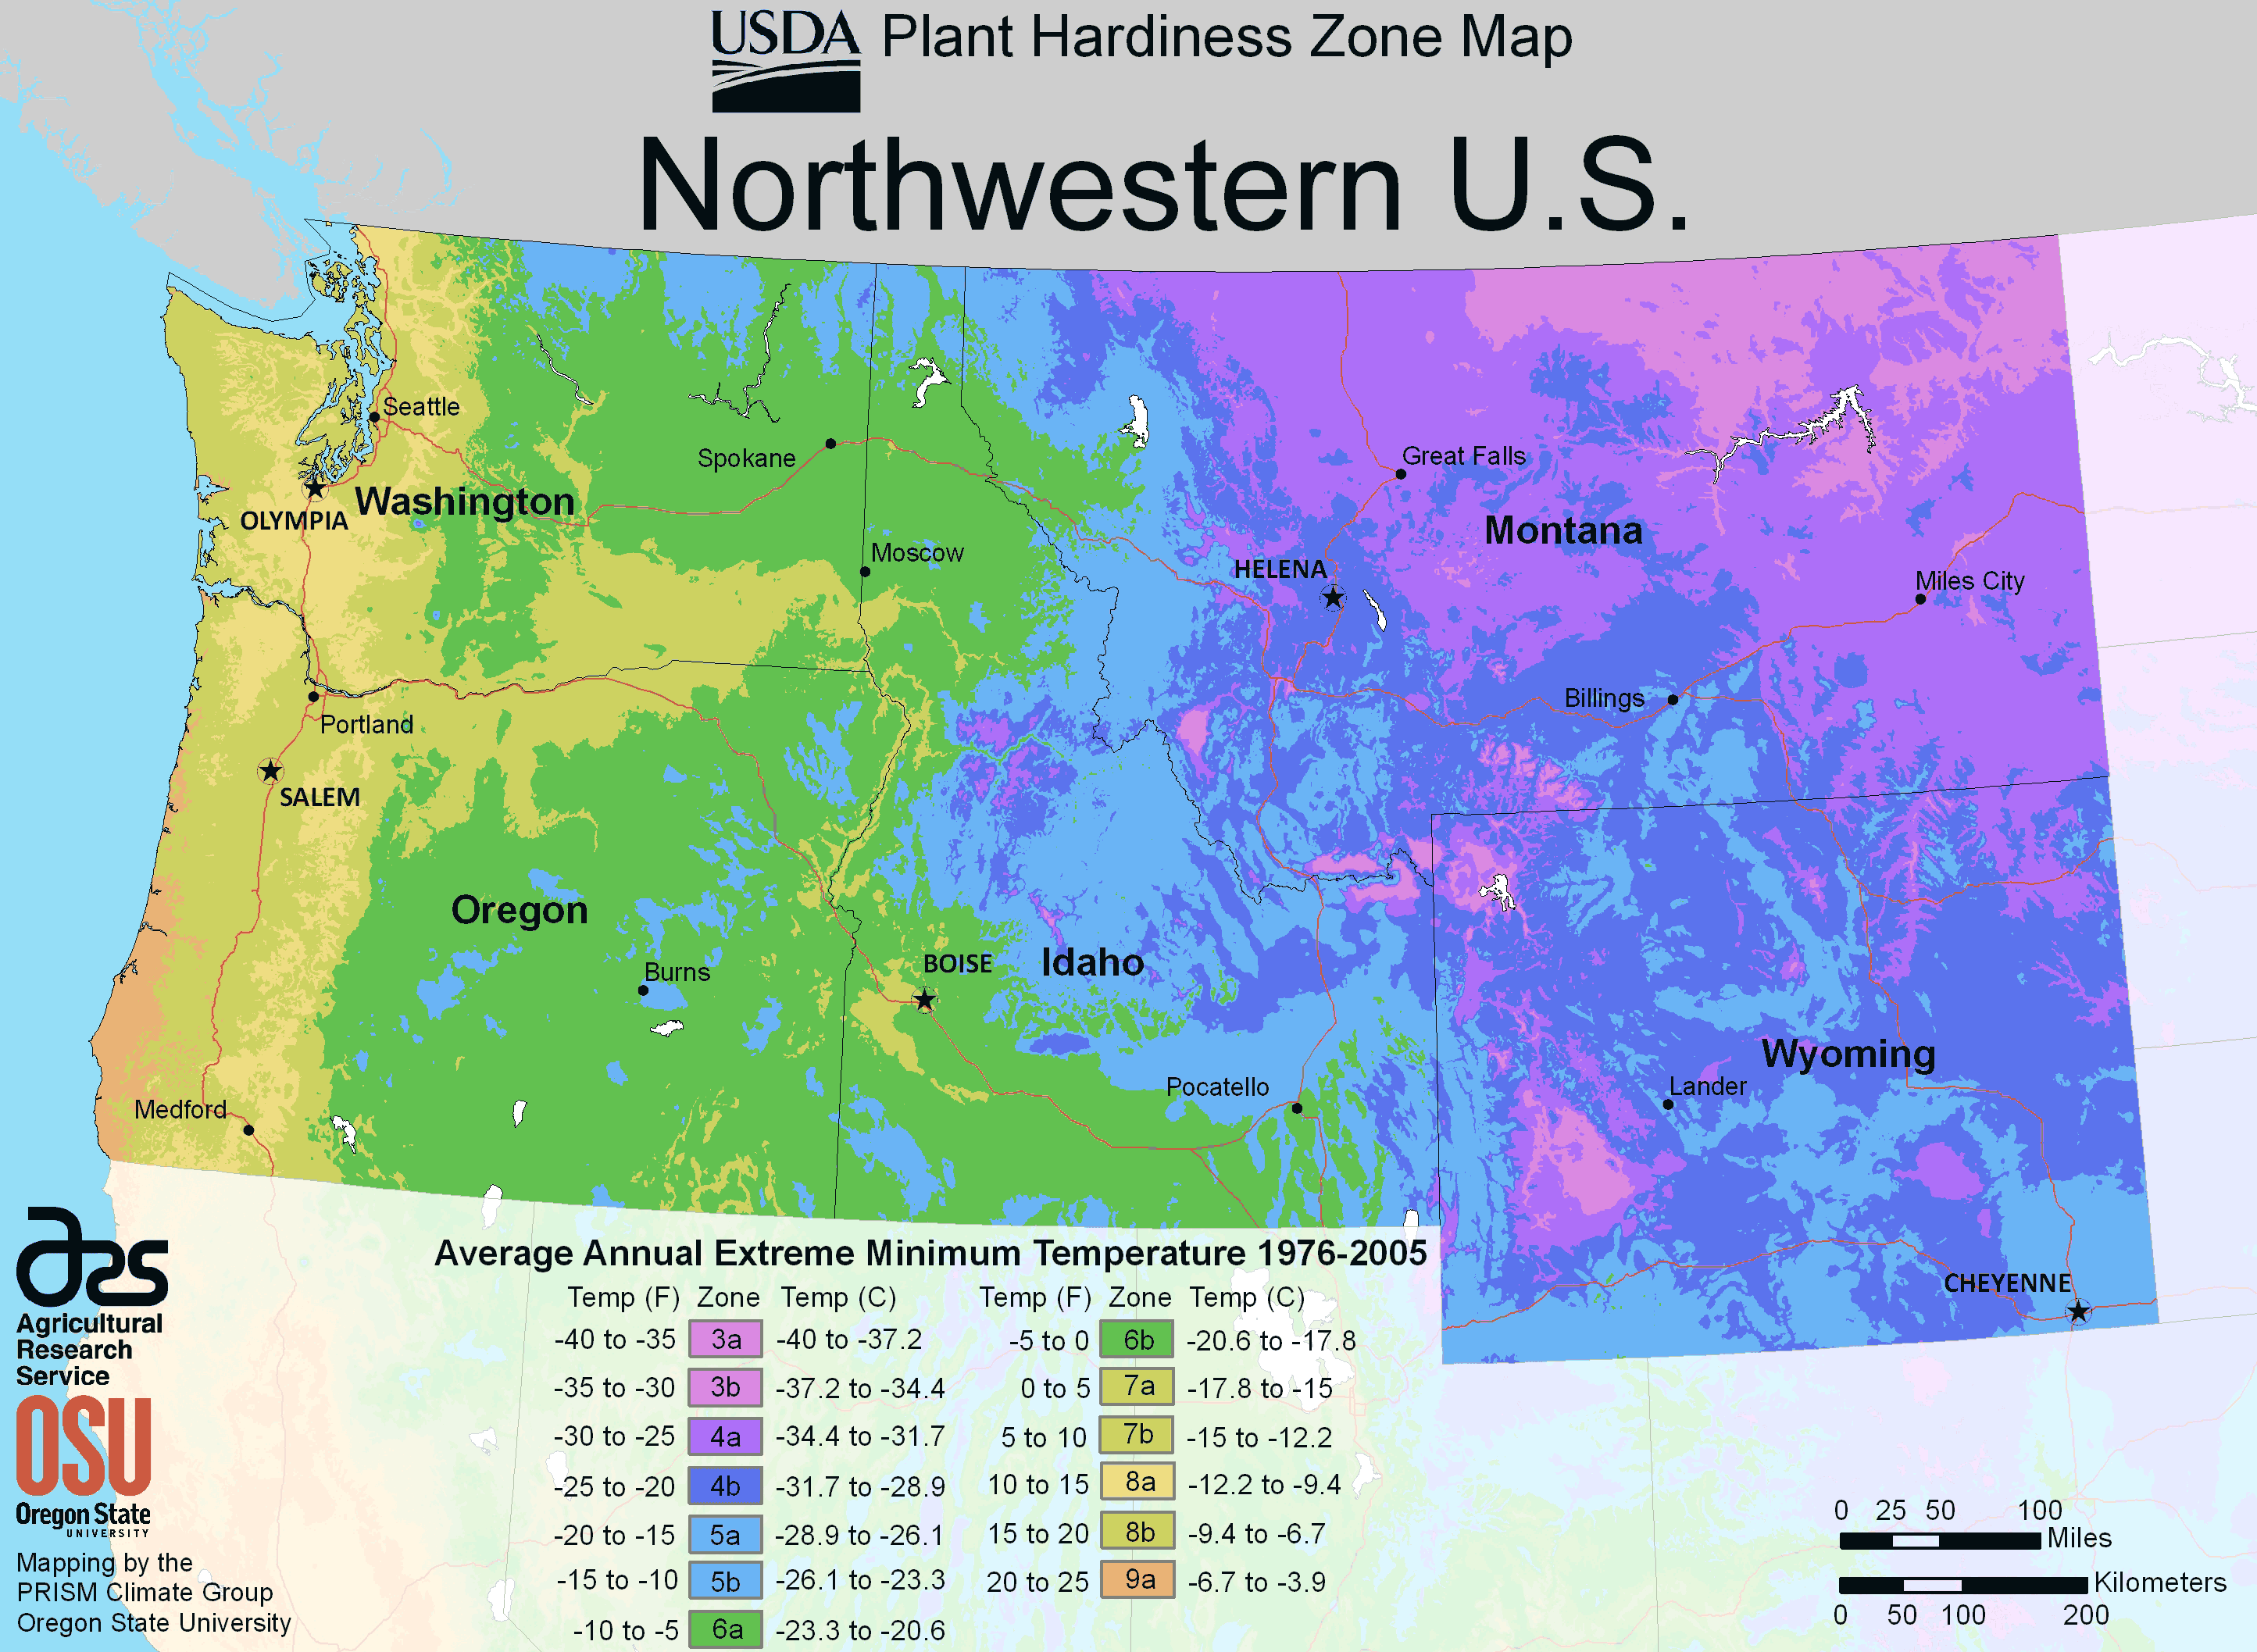 North West Us Plant Hardiness Zone Map